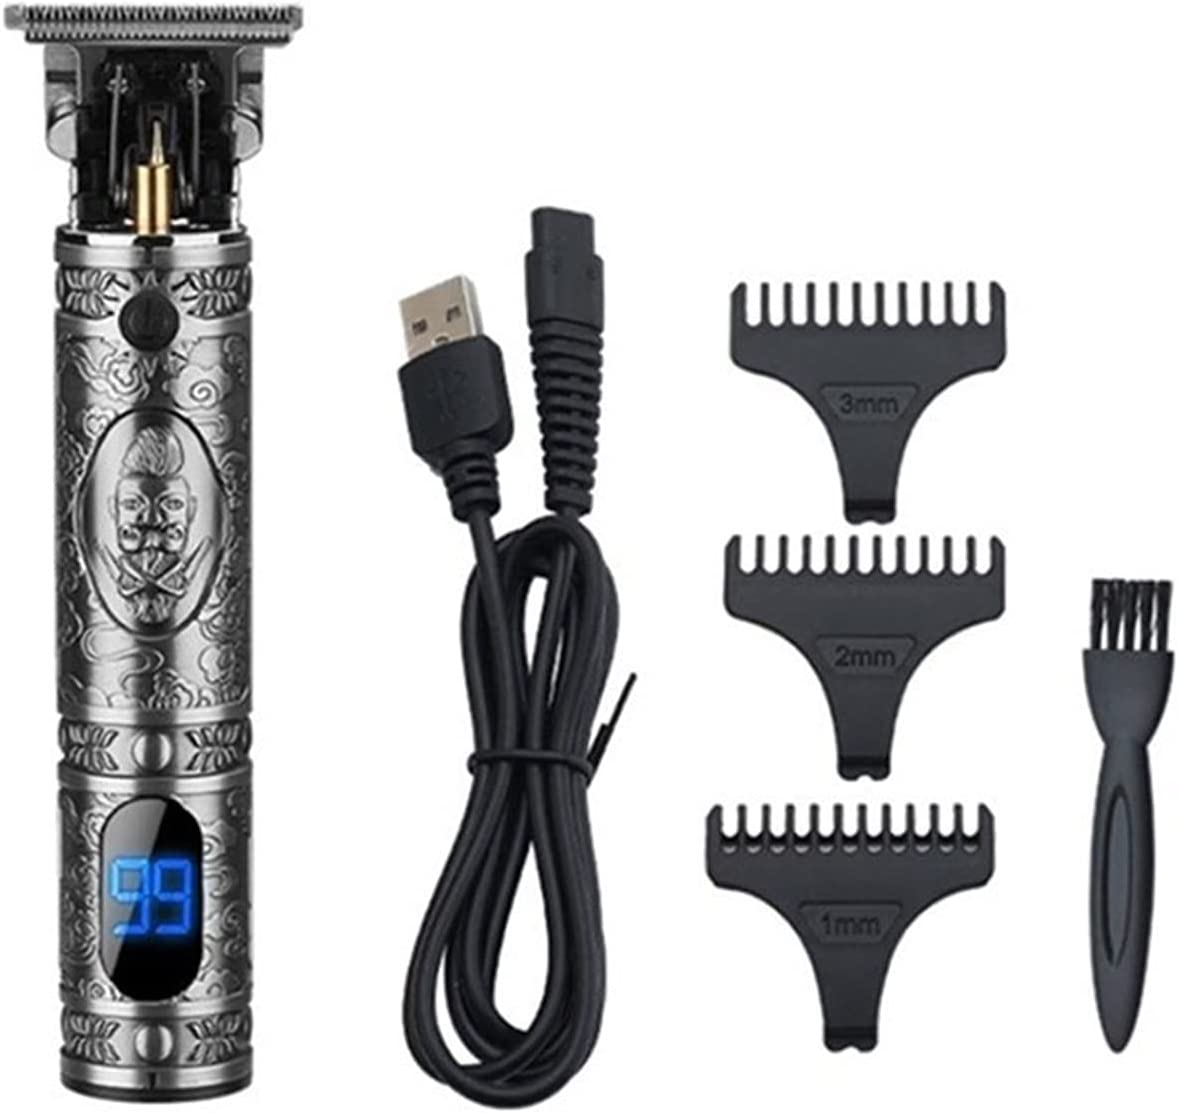 Wuleldsd Hair Clippers Men T-O Clipper Max 77% OFF Selling Professional Trimmer